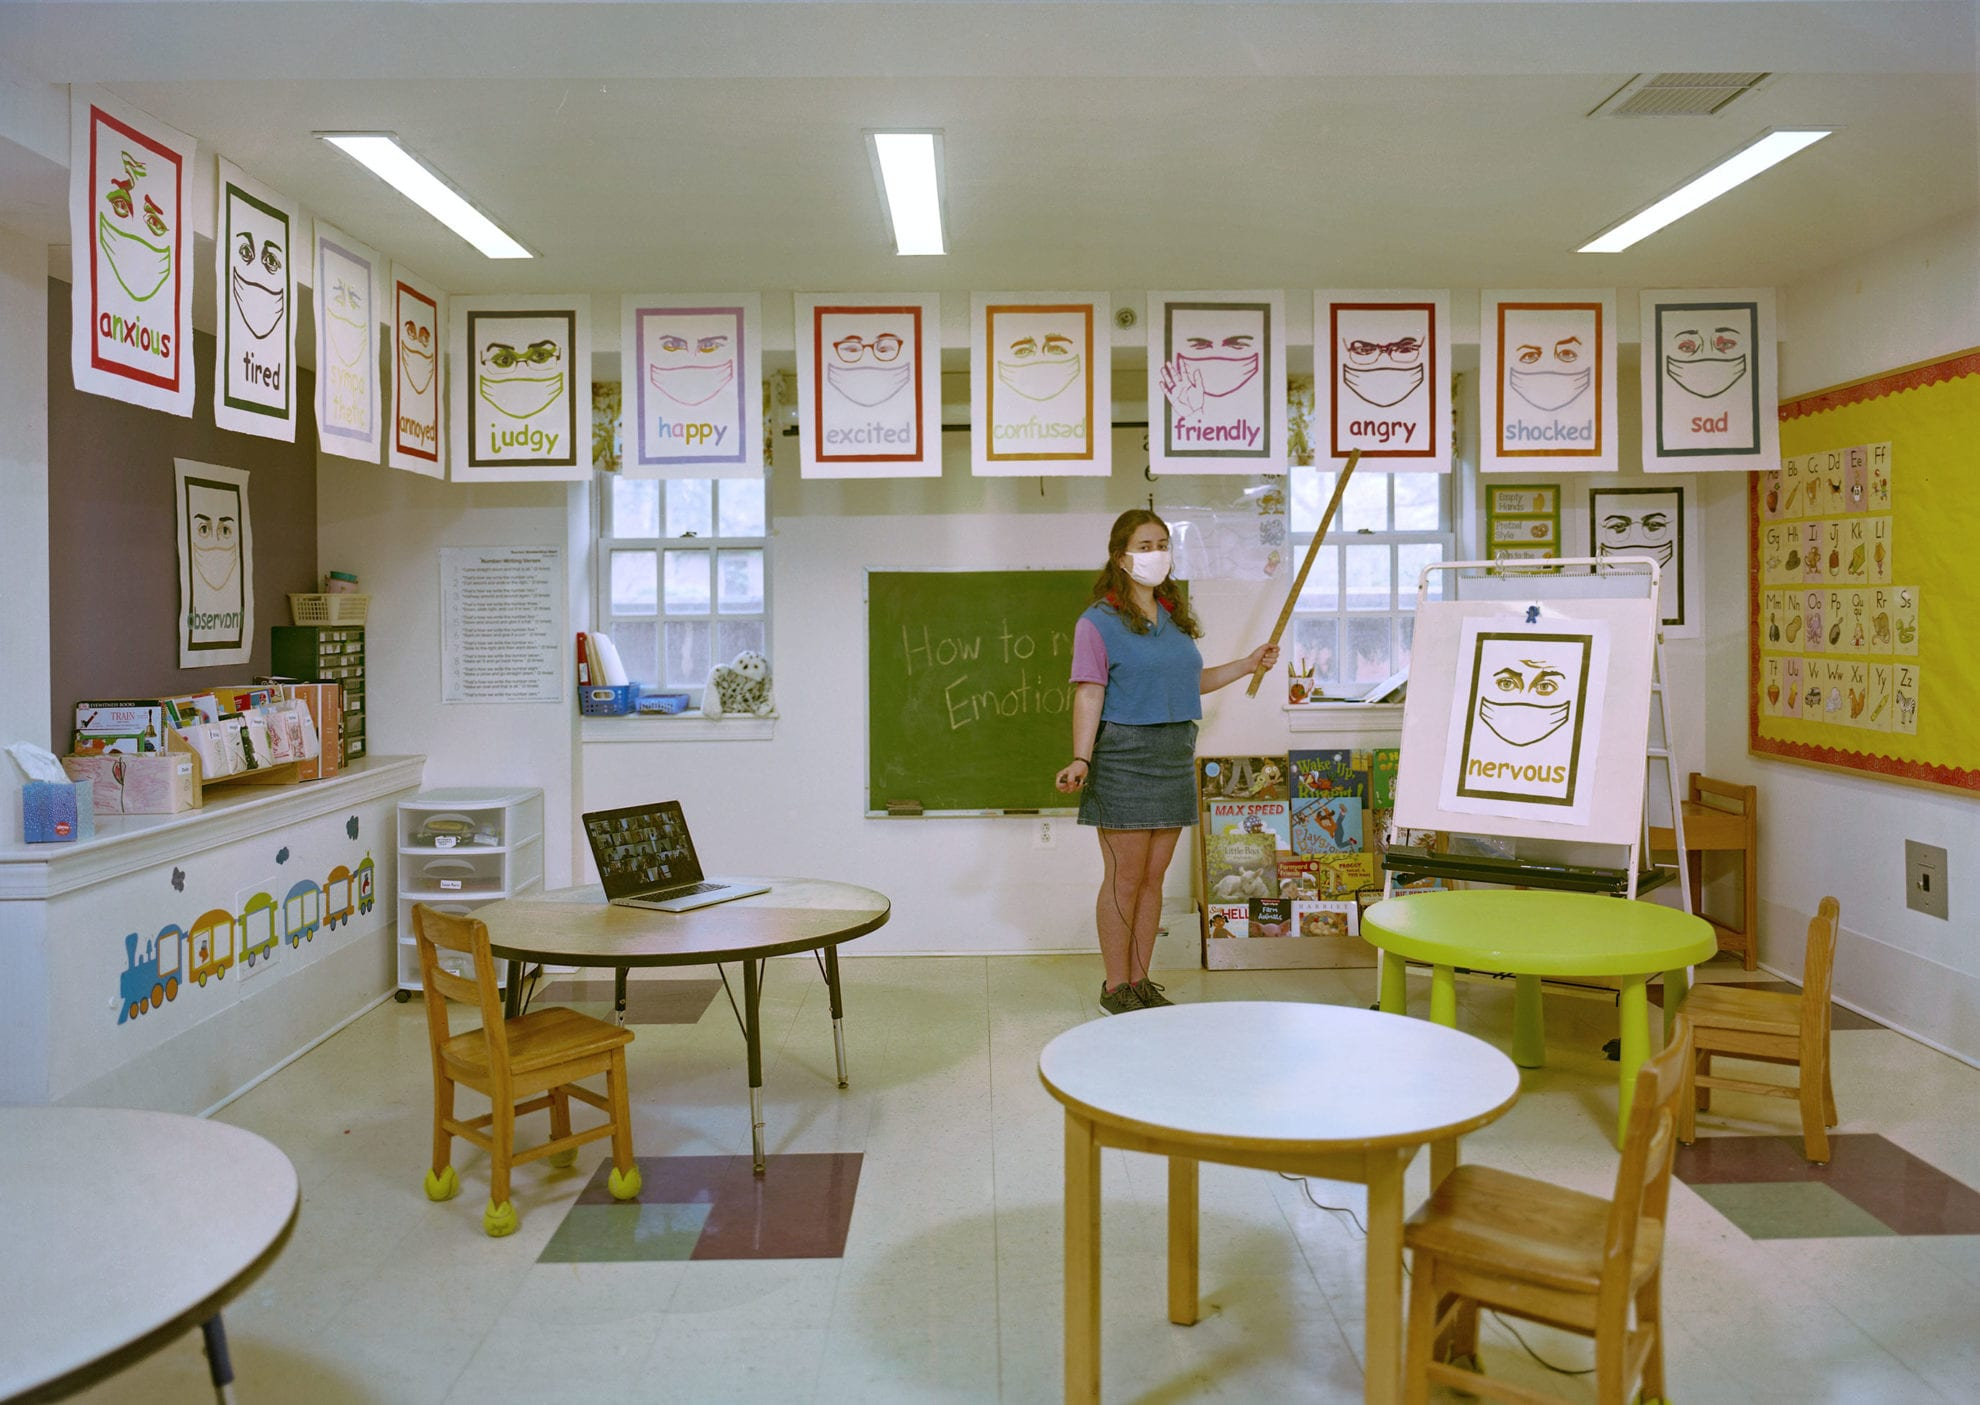 Rachel Grand BMC '21 stands in a classroom in the Phebe Thorne Anna School, showcasing some prints depicting various emotions.